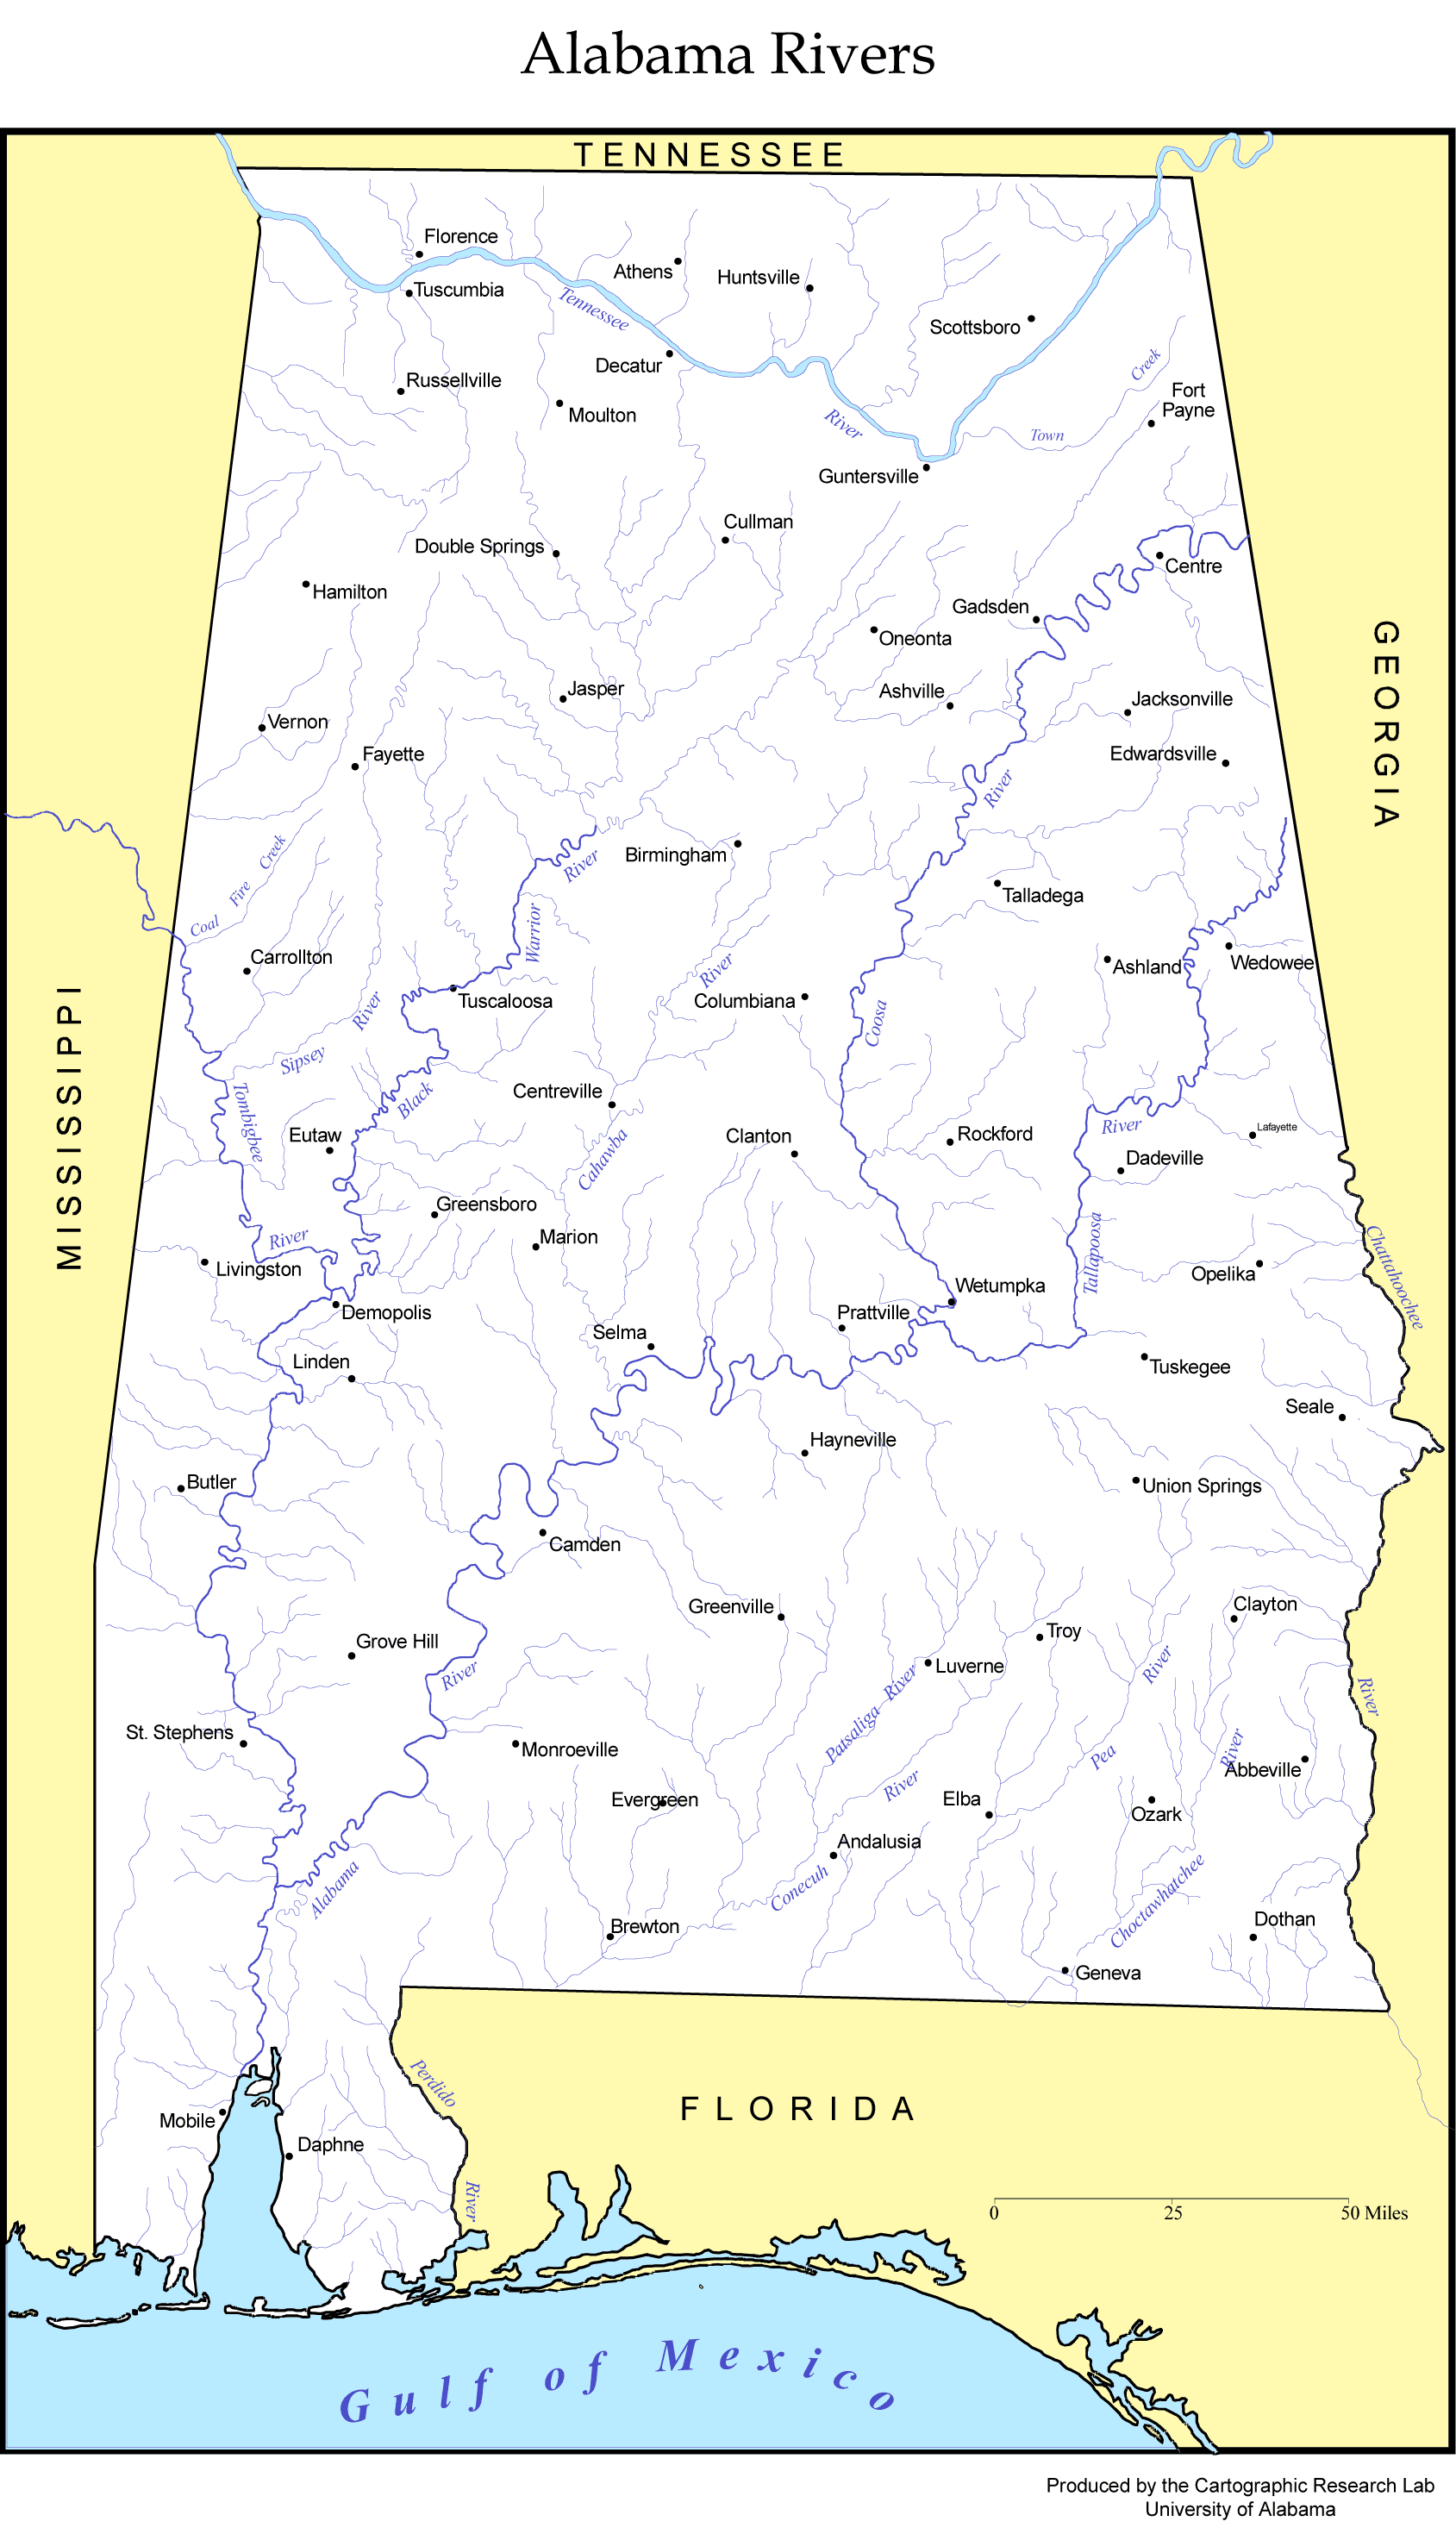 Albama Rivers Map Mapsofnet - Alabama rivers map